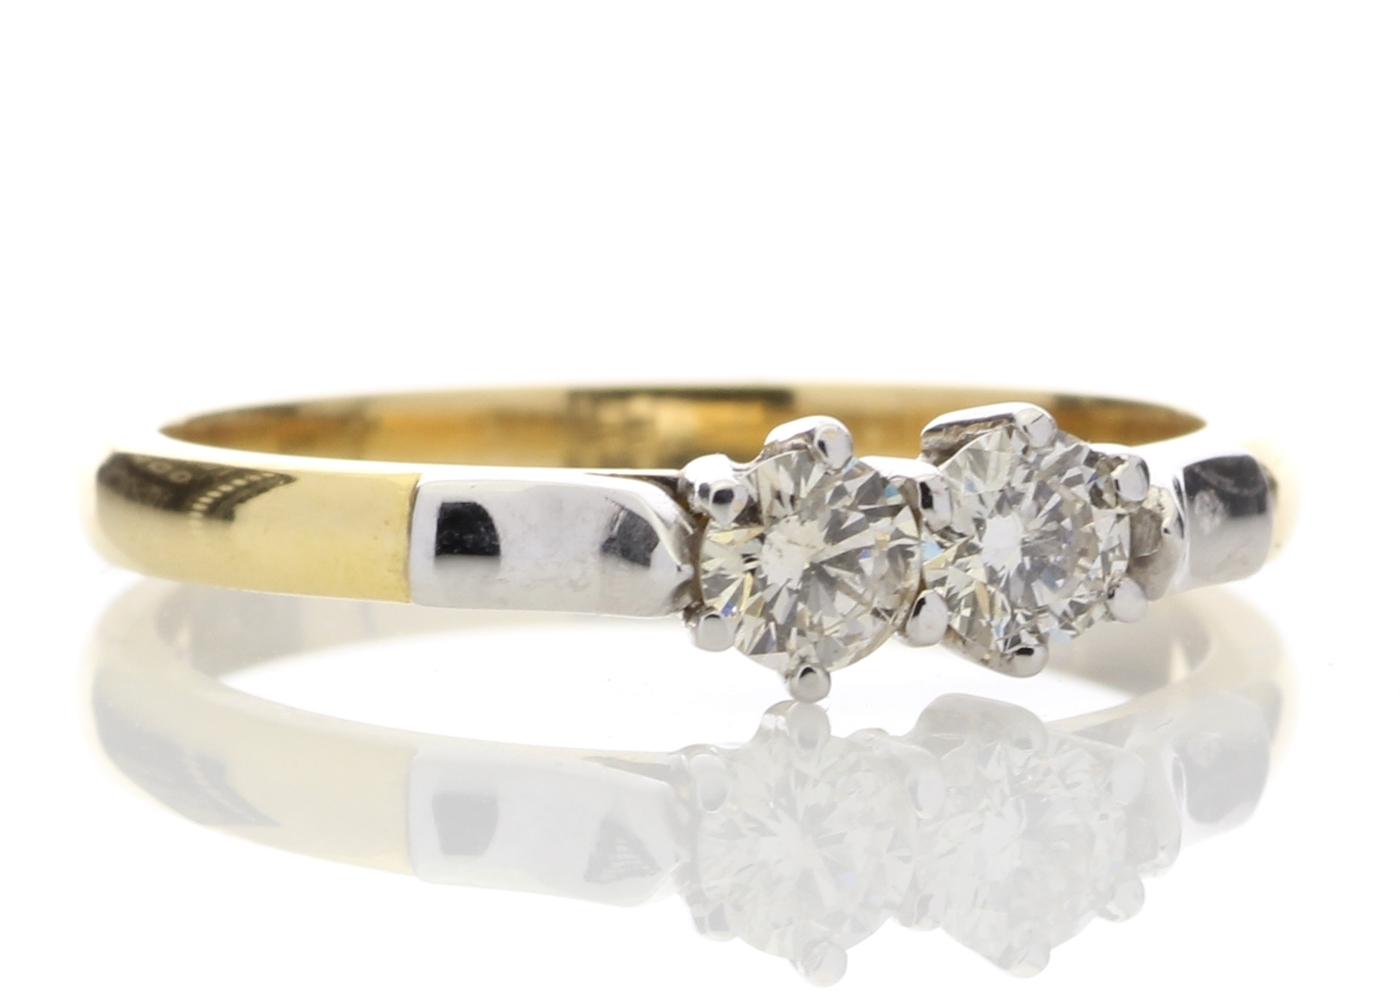 18k Two Stone Claw Set Diamond Ring 0.33 Carats - Image 4 of 5